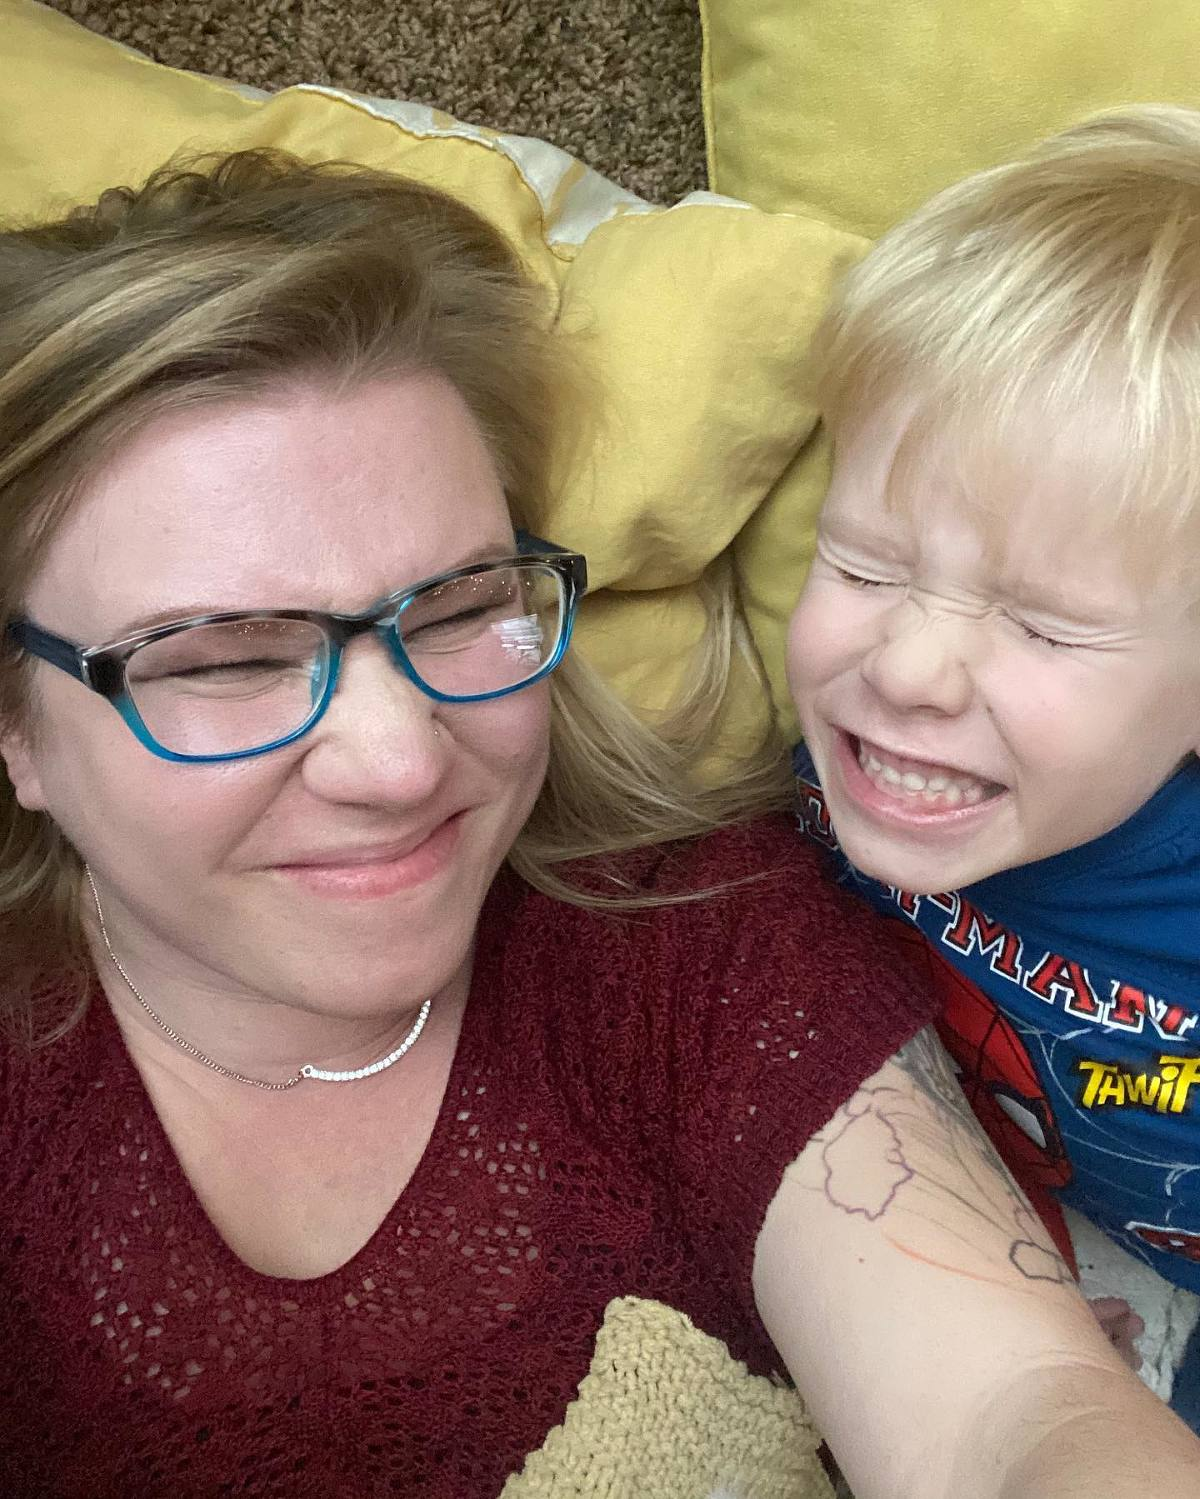 Blonde mother and young blonde son squinting and smiling together